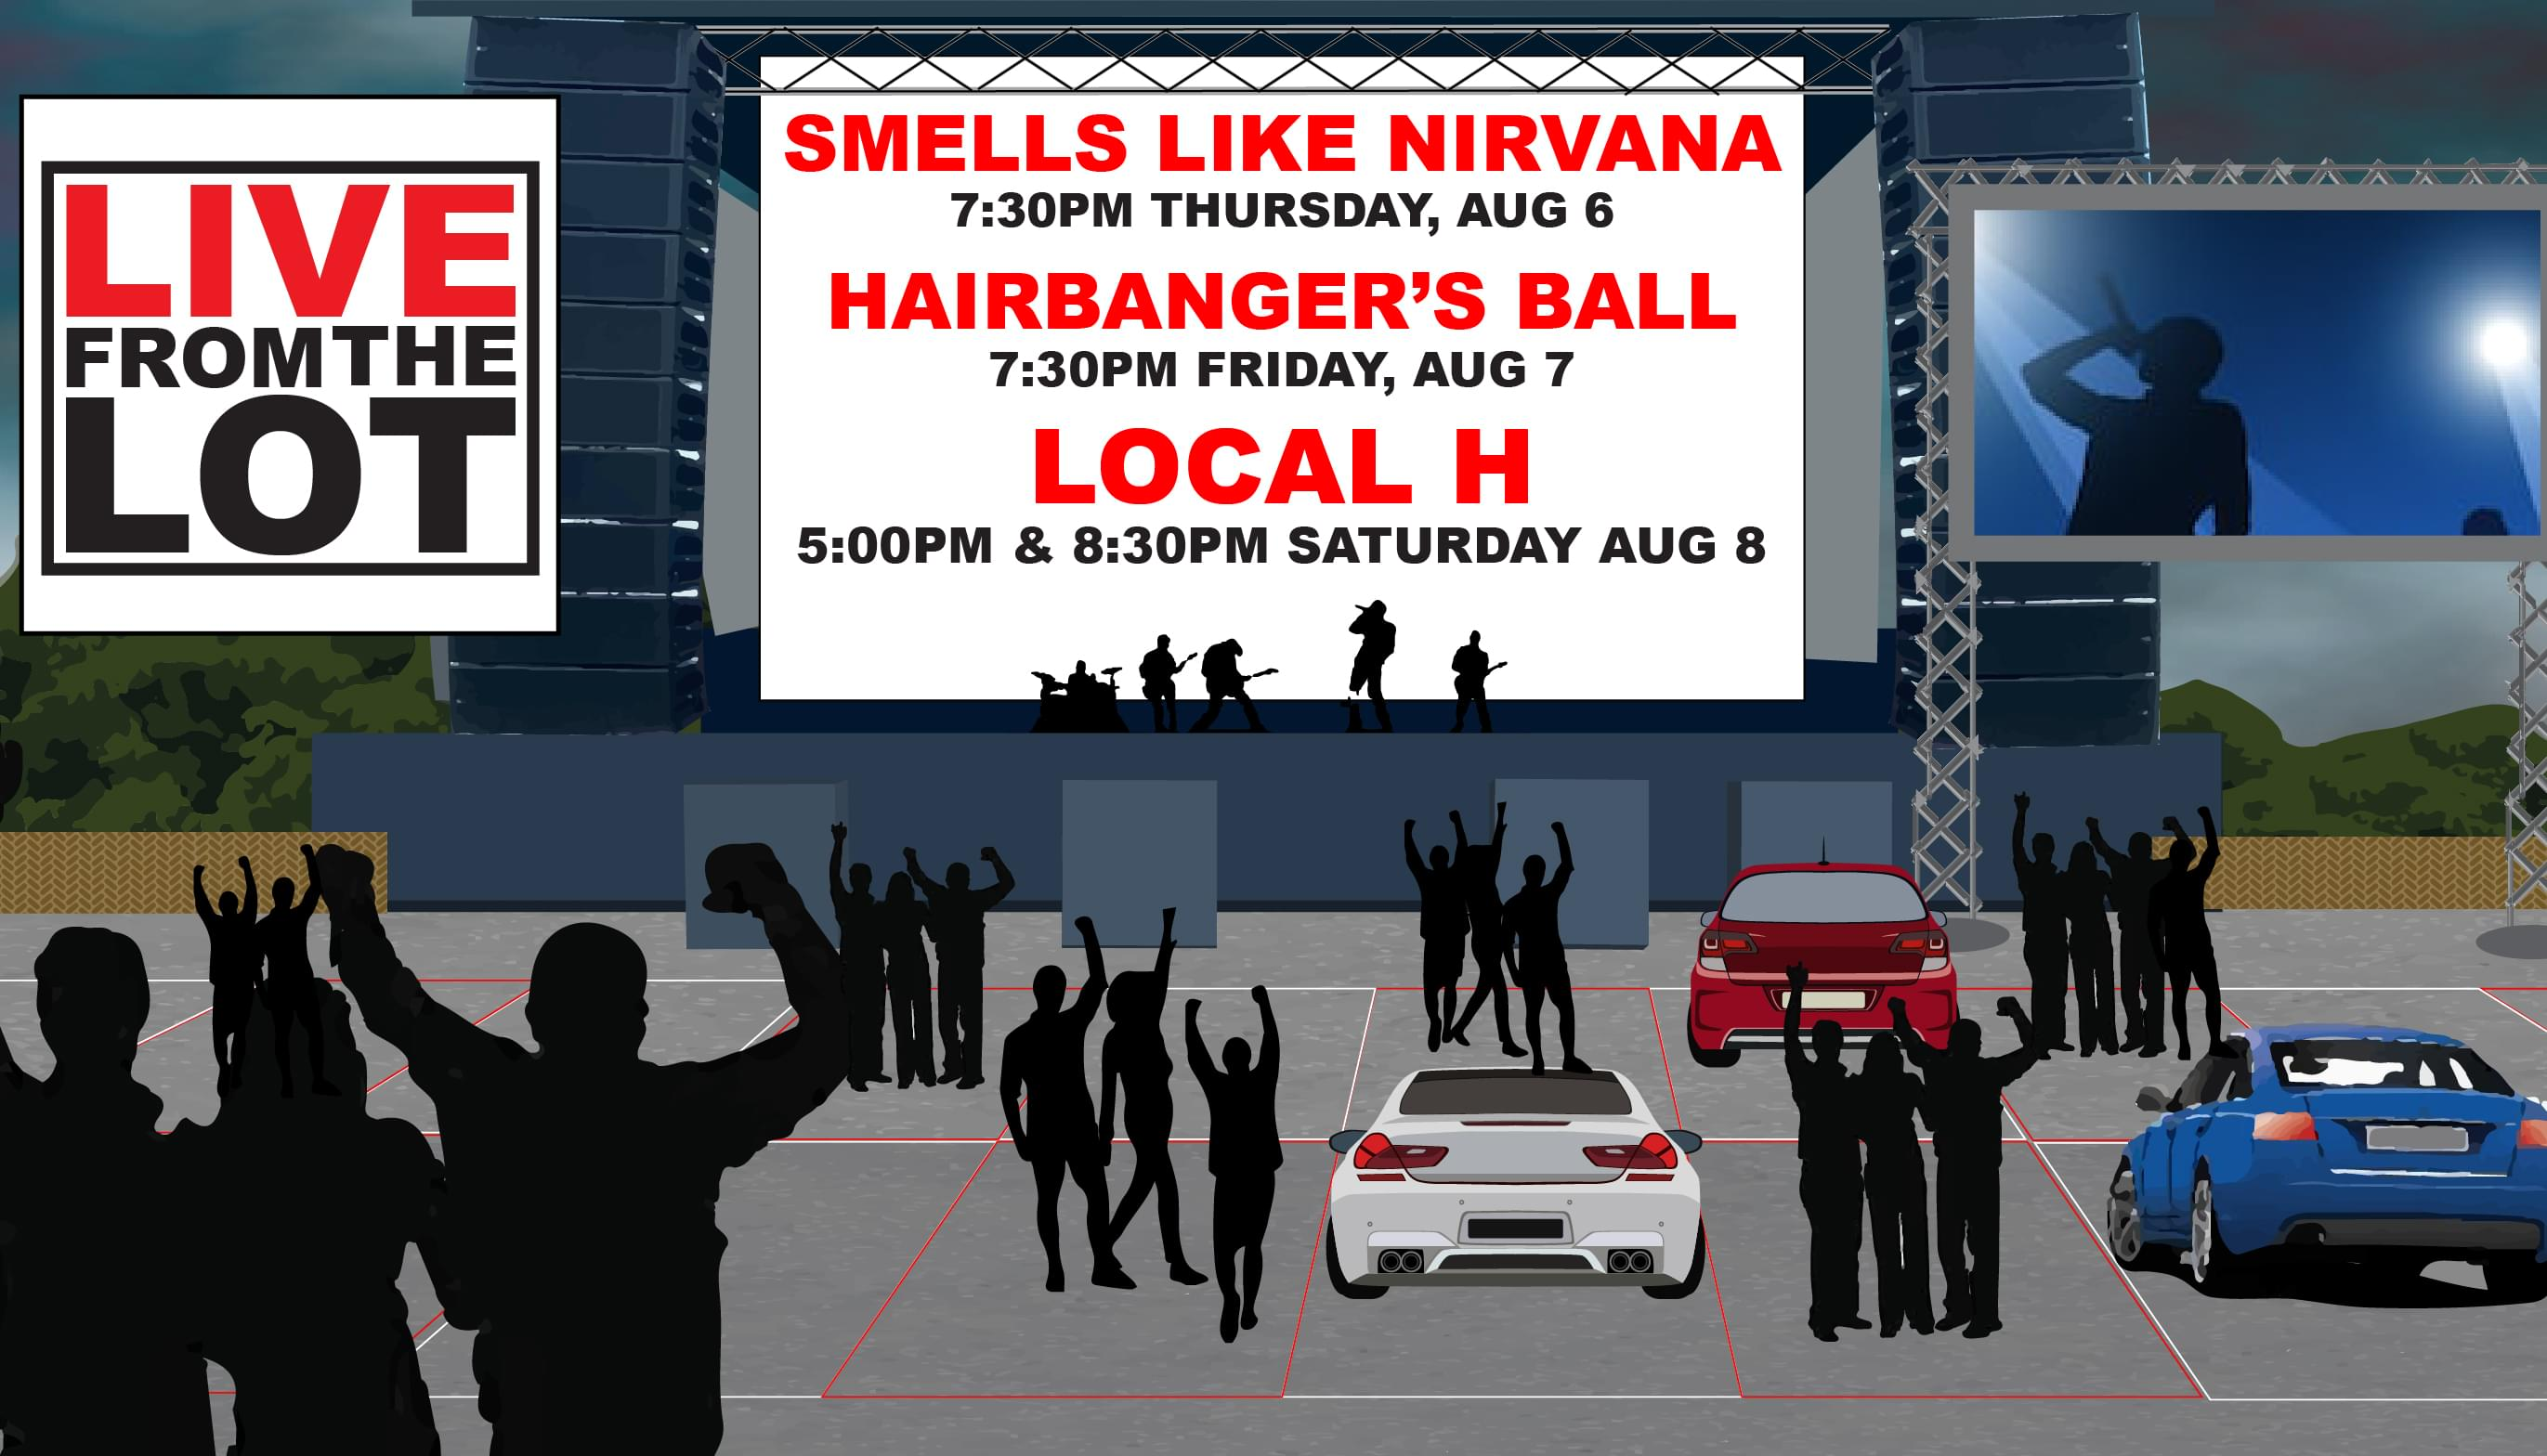 8/8/20 – LIVE FROM THE LOT featuring Local H – Show 2